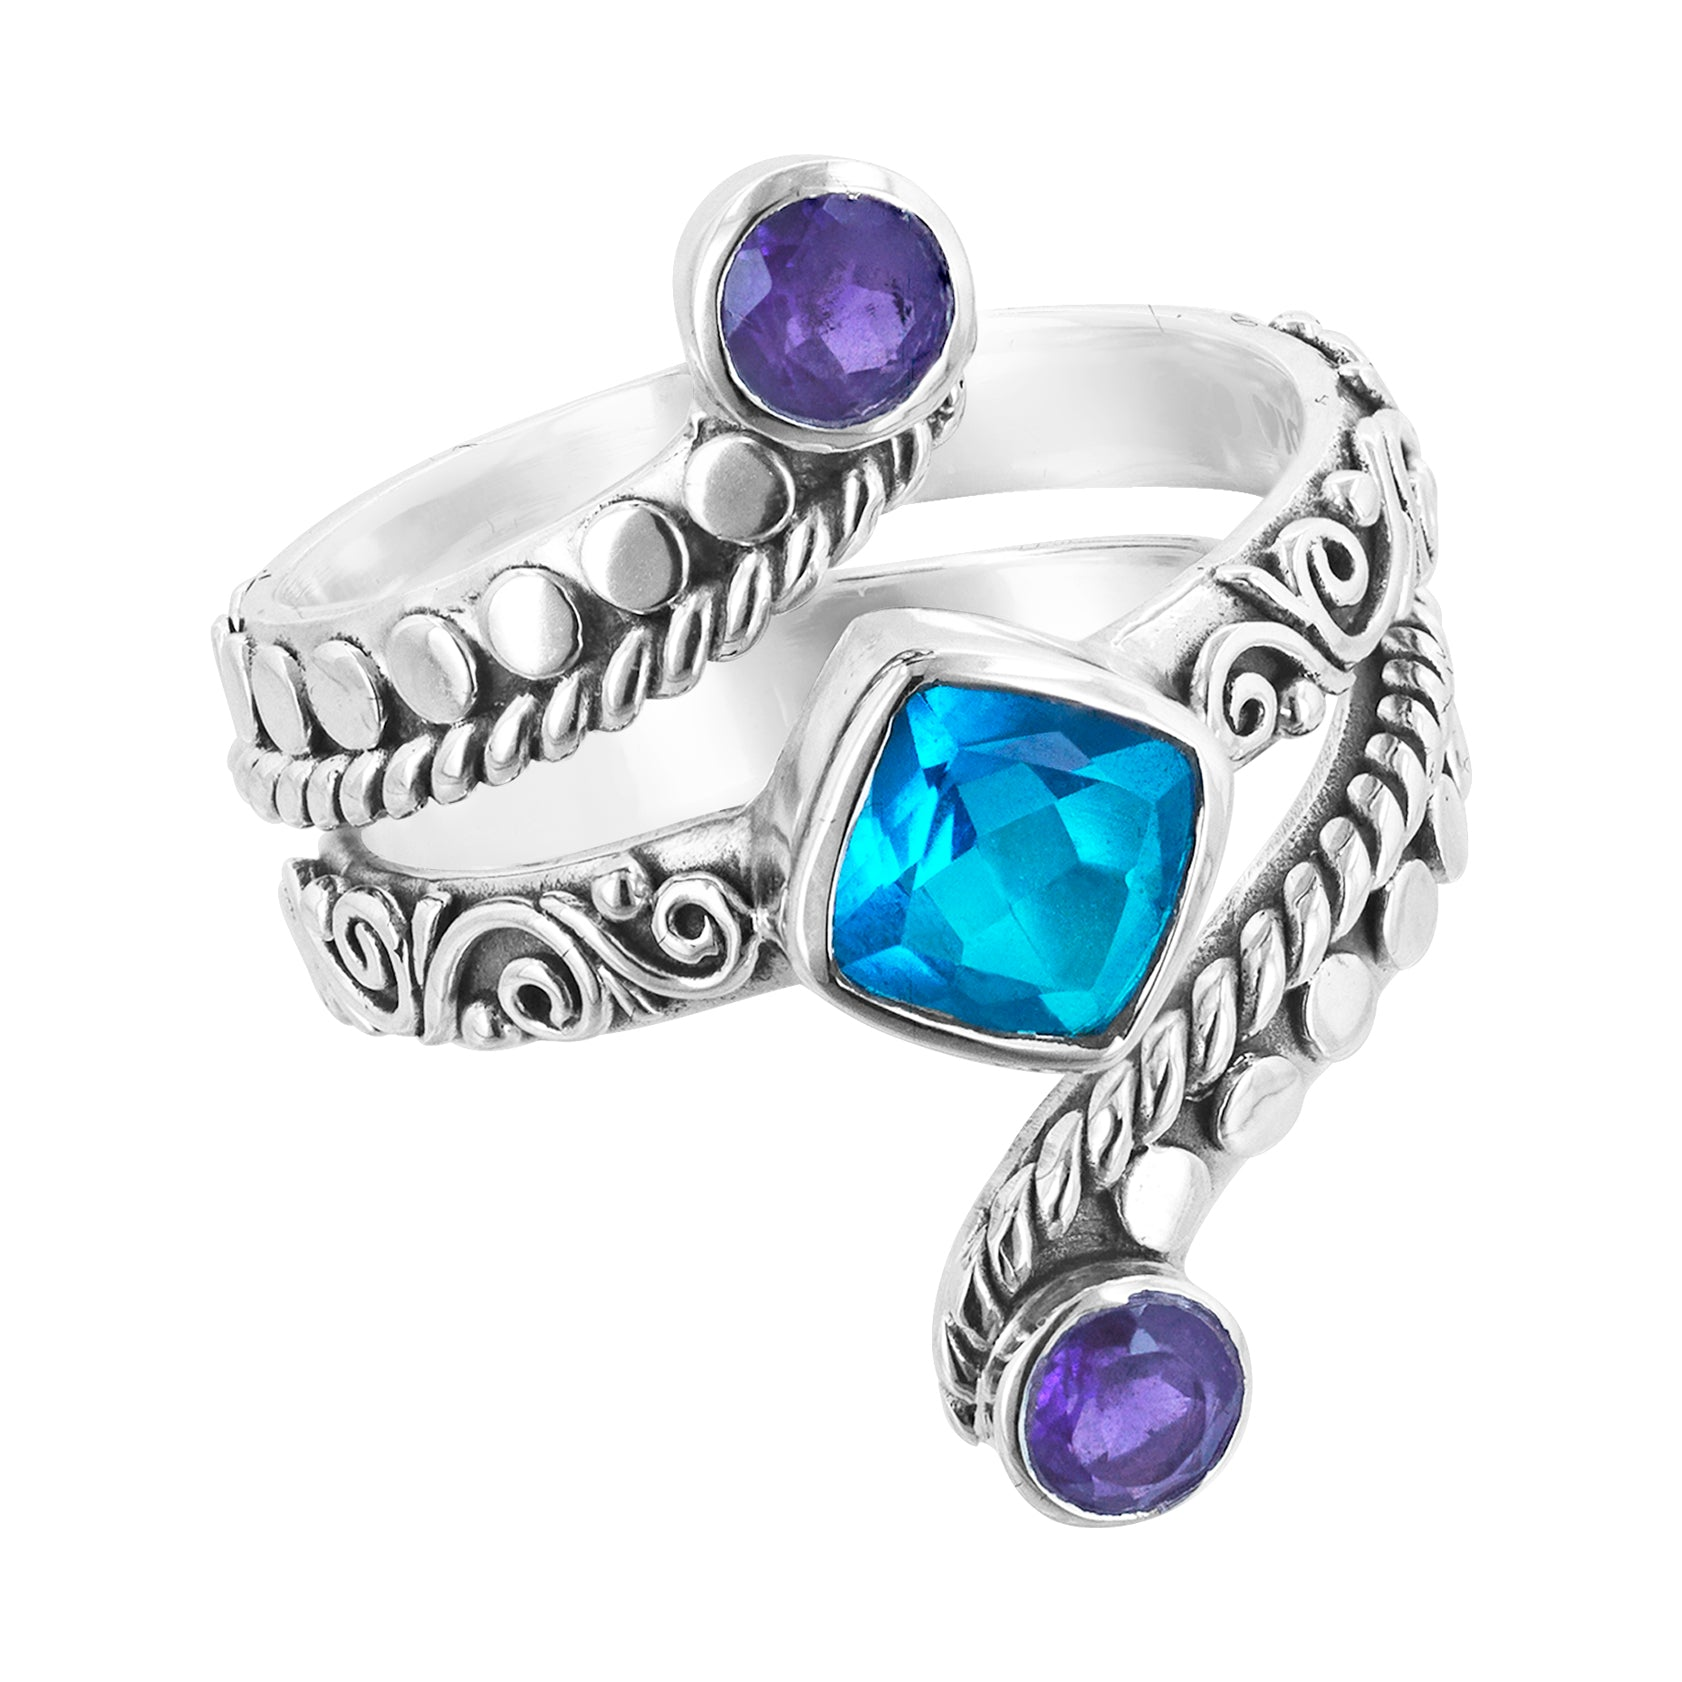 Bali Sterling Silver Wrap Ring with Blue and Purple Stones